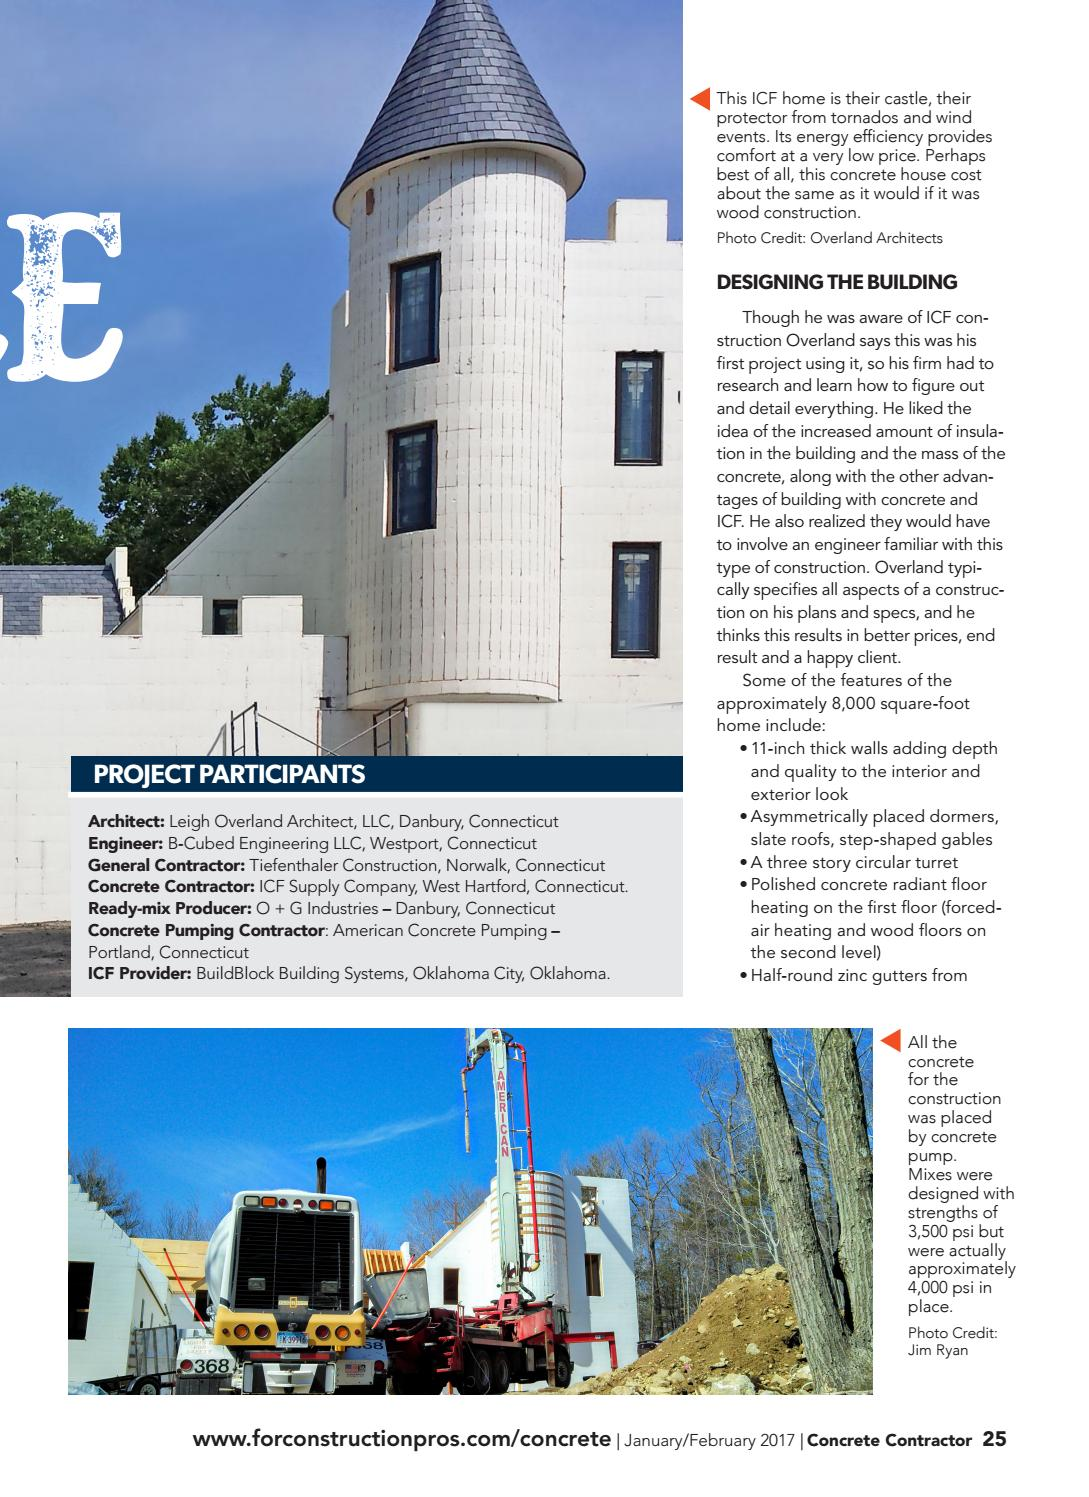 Concrete Contractor January/February 2017 by ForConstructionPros com